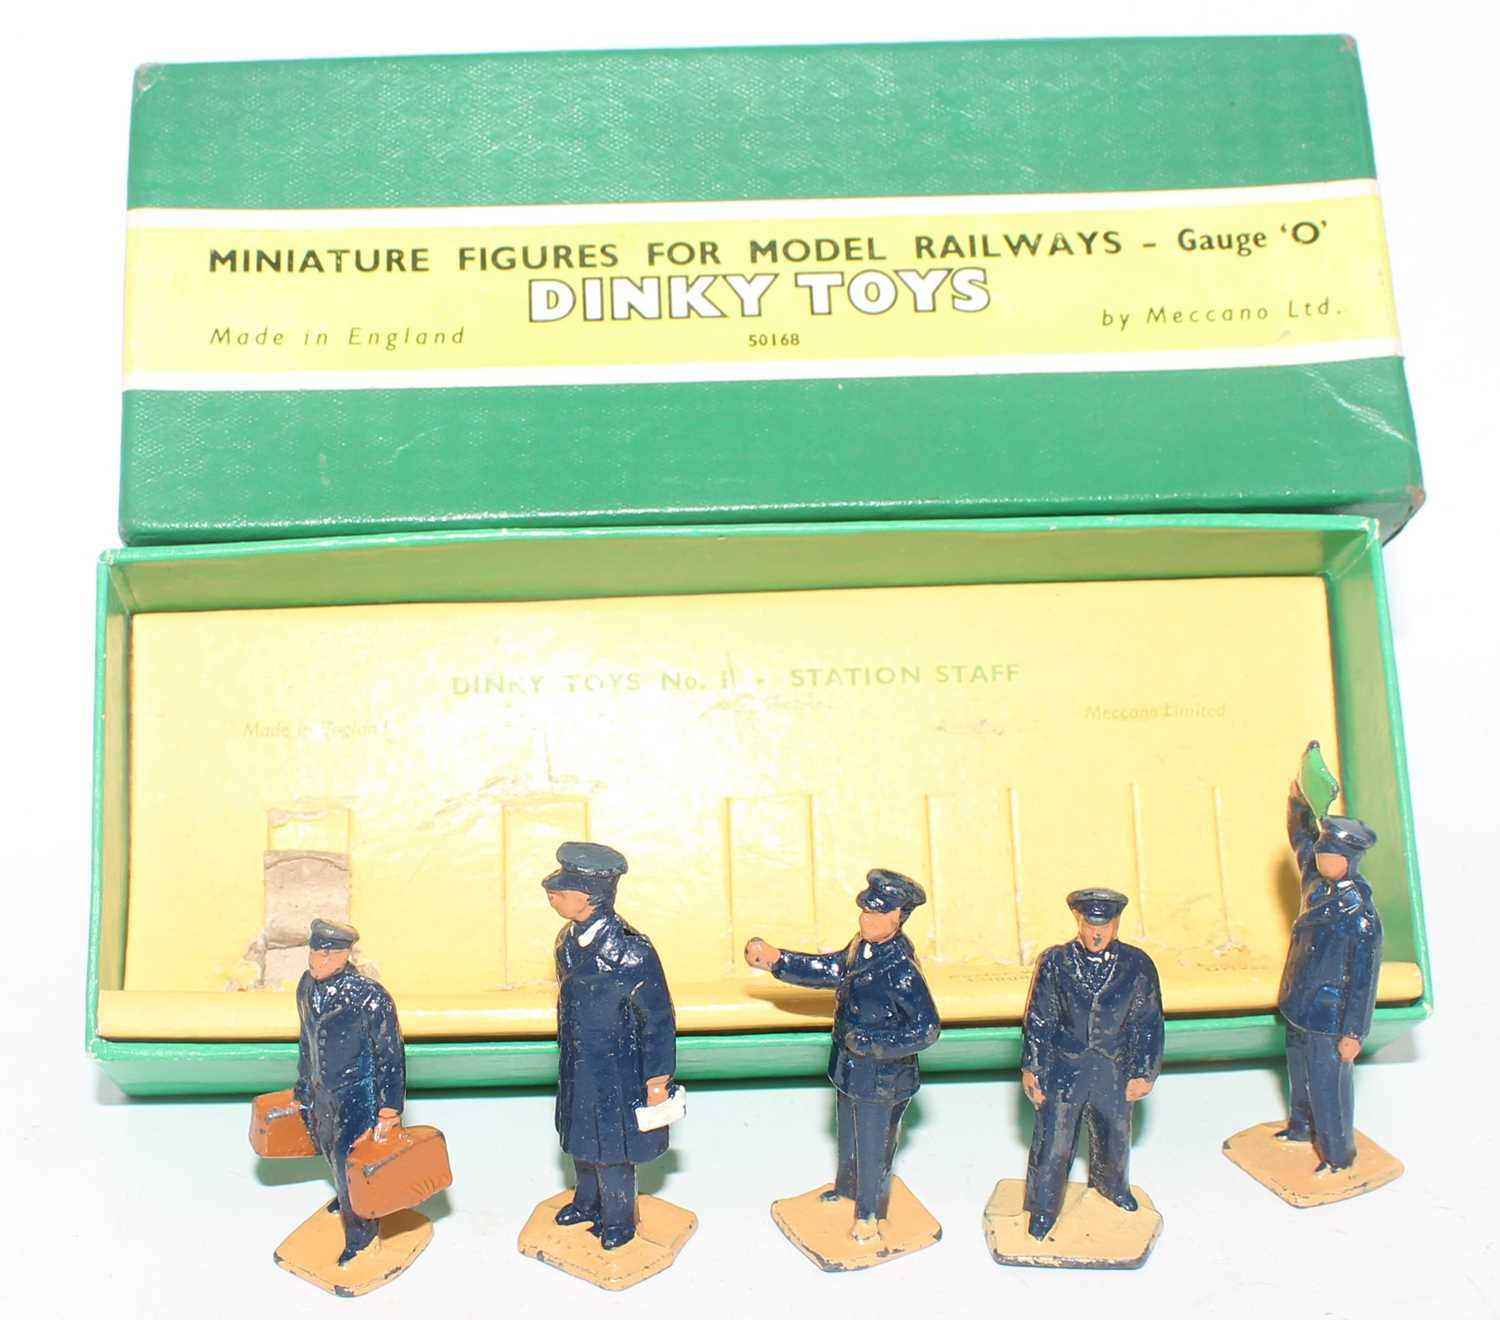 Dinky Toys miniature for model railways 0 gauge gift set No. 001 station staff, housed in the